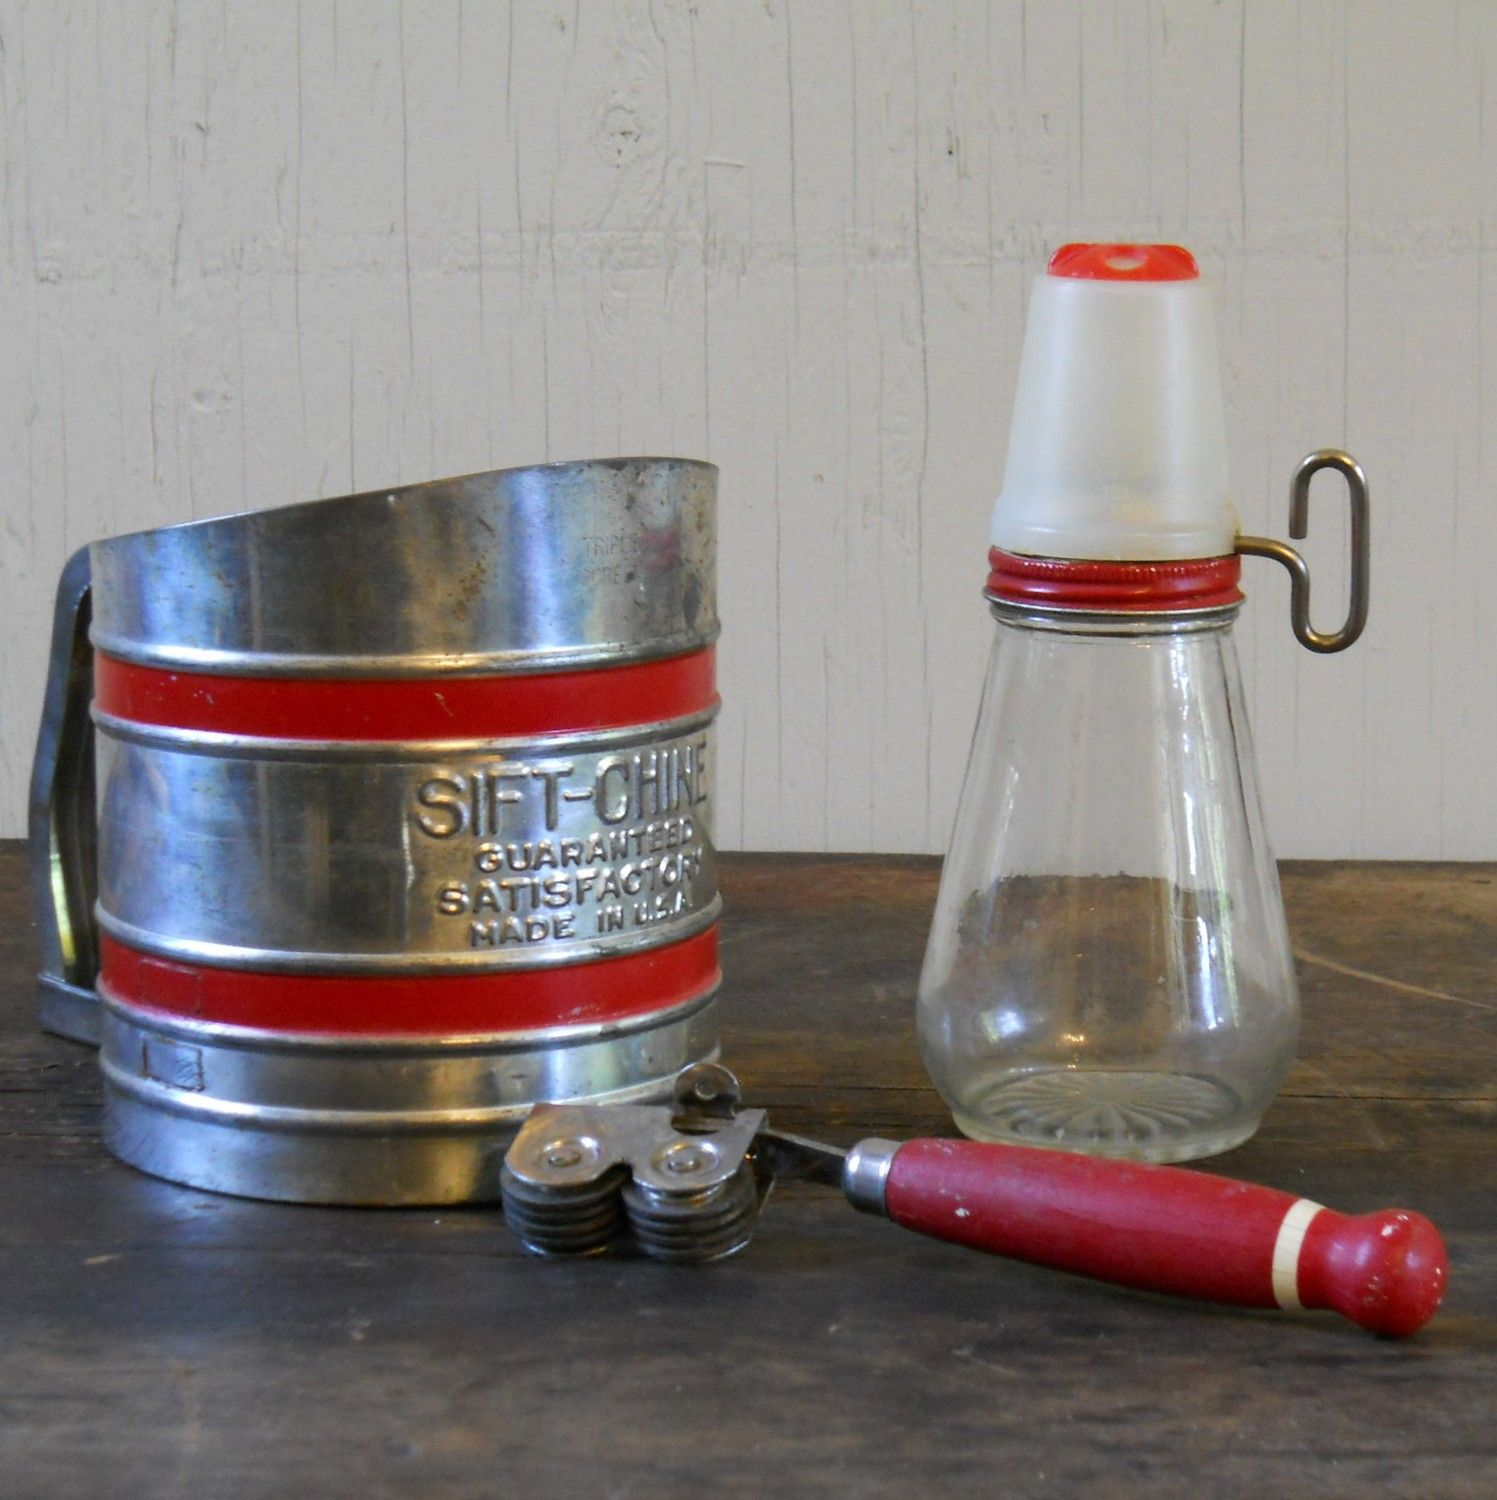 Vintage Kitchen Goods: Vintage Red Kitchen Items: Sift-Chine Sifter, Knife